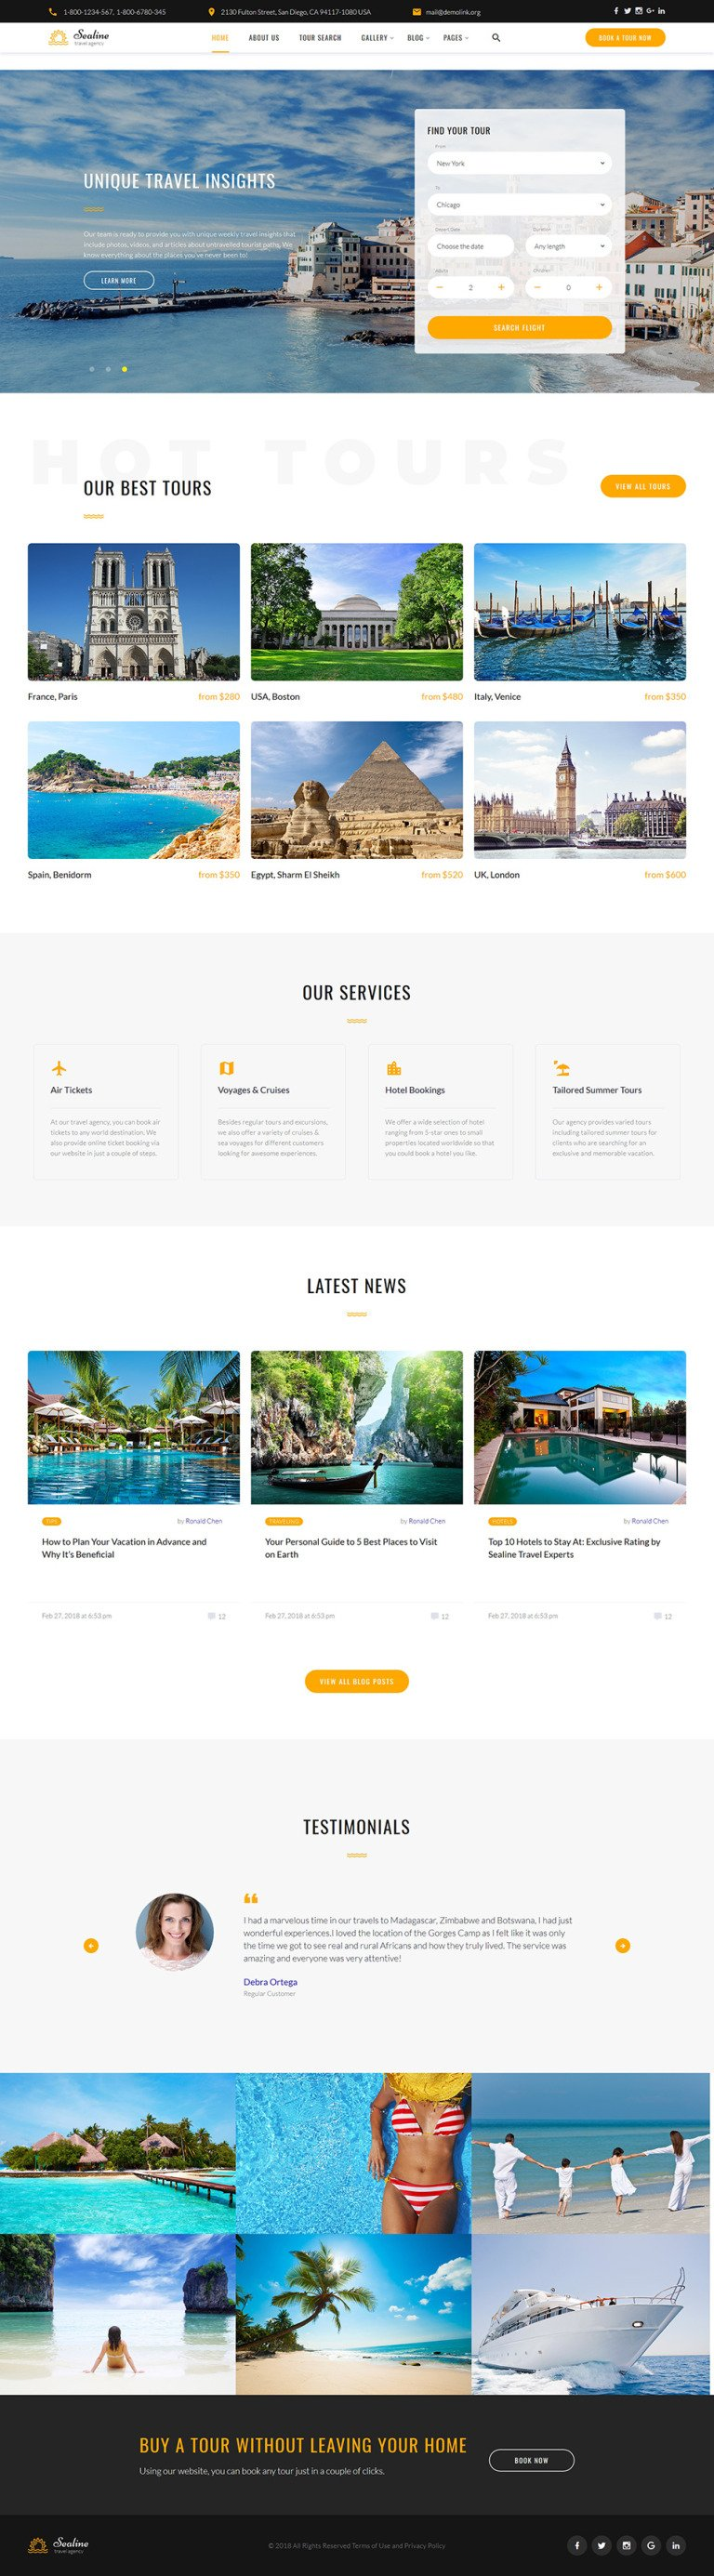 Travel Agency Responsive Website Template New Screenshots BIG